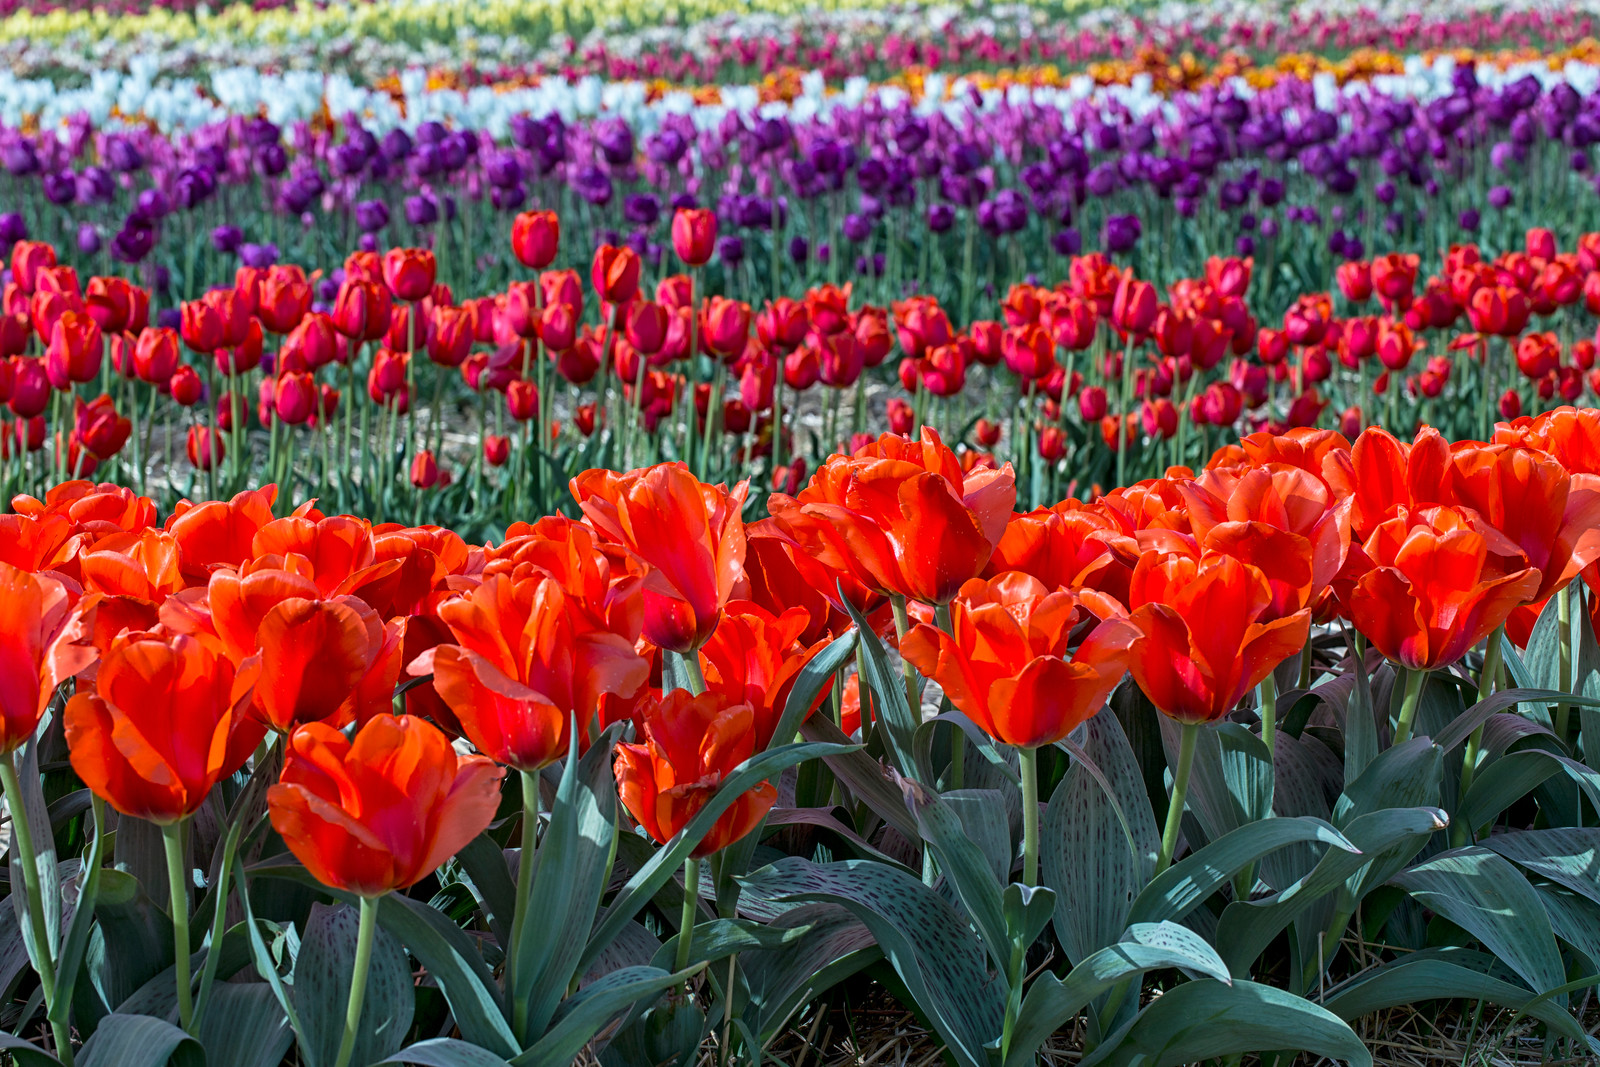 Rows of Wicked Tulips_3564